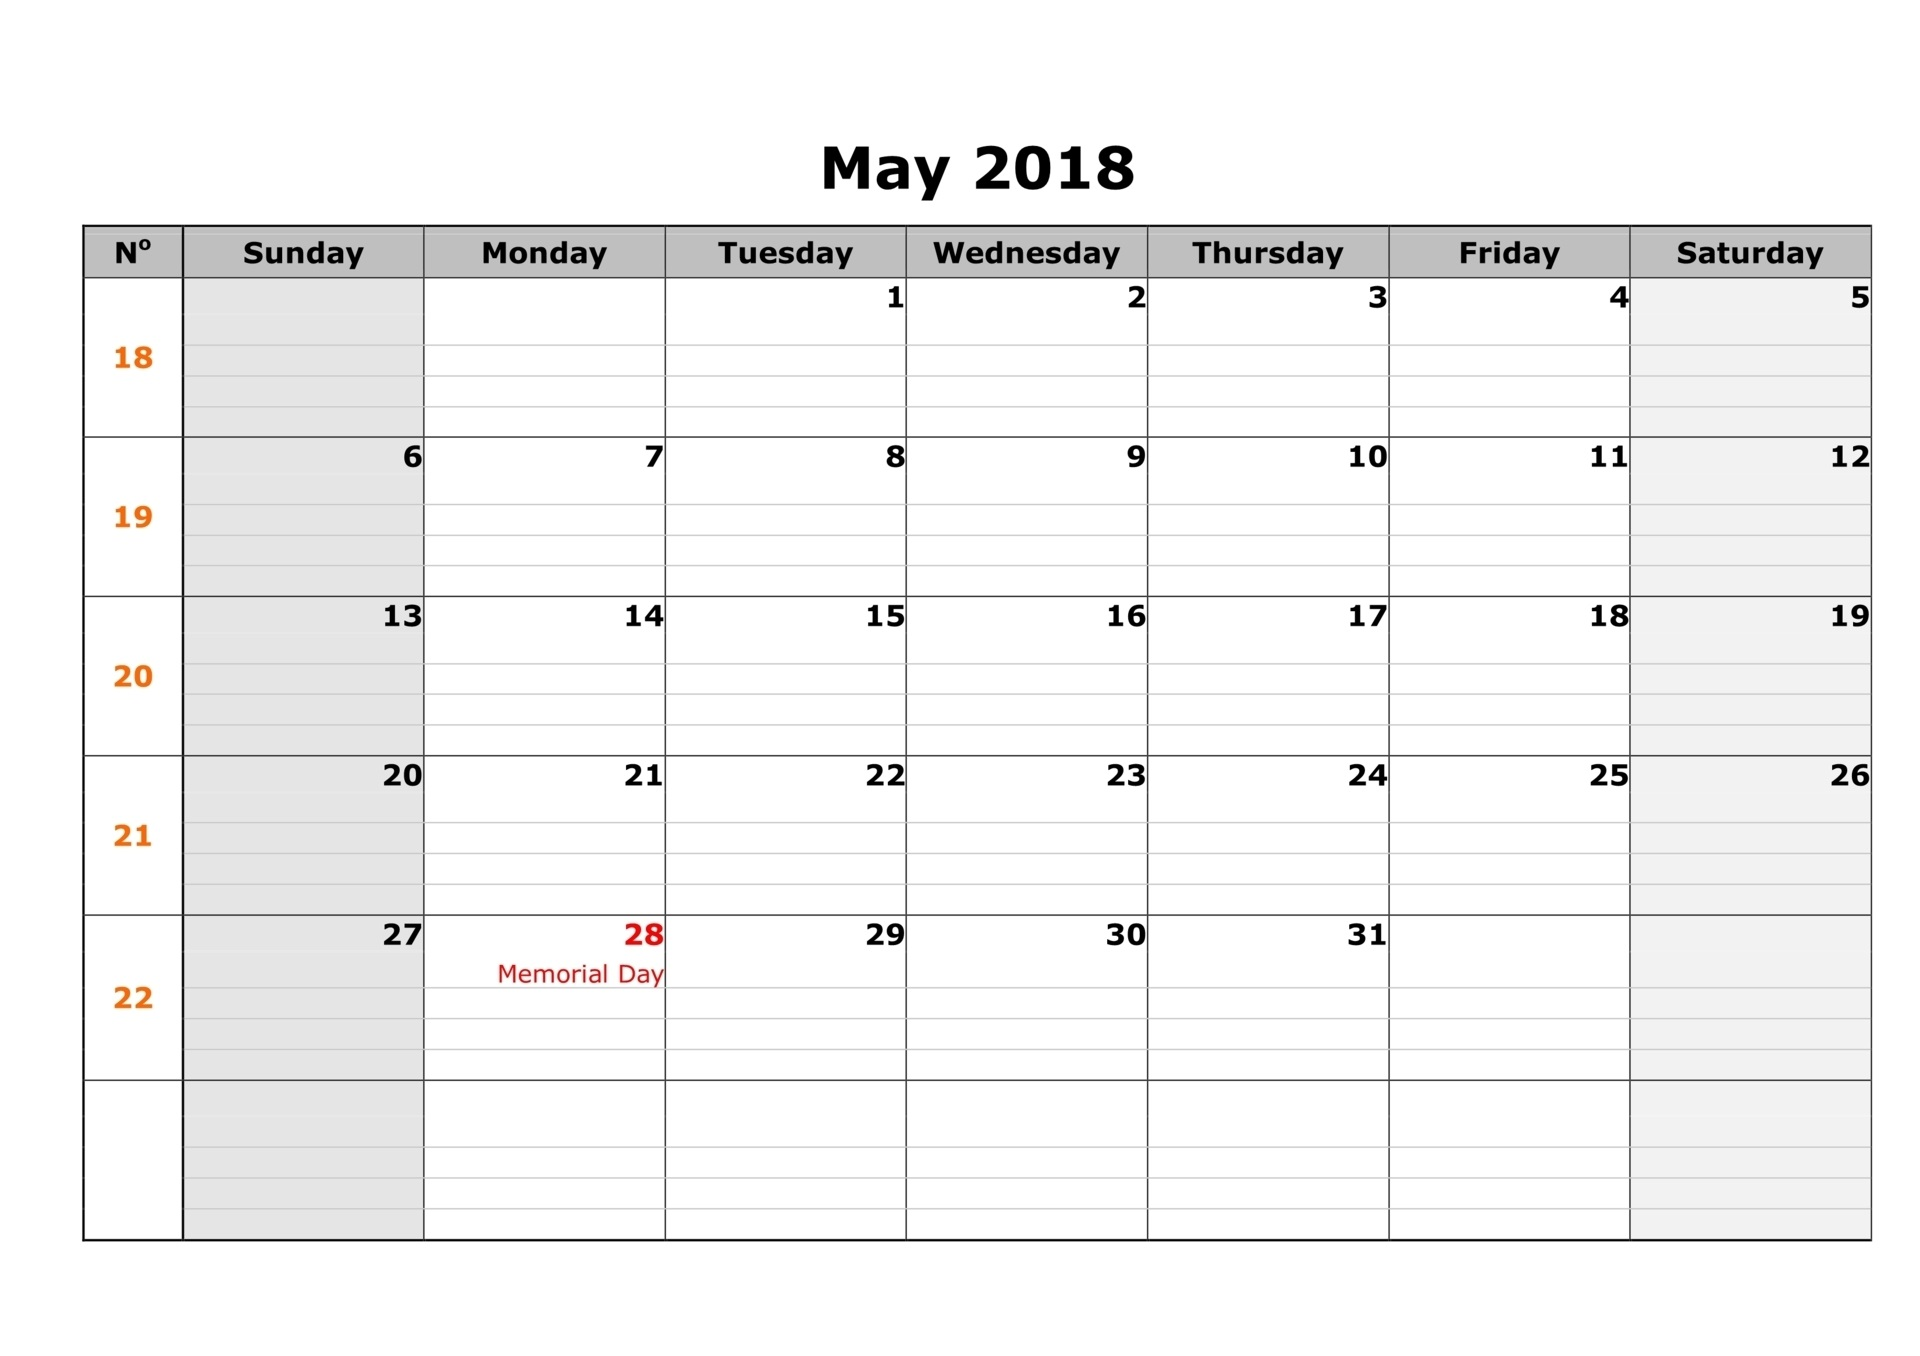 May 2018 Holidays with Festivals & Events